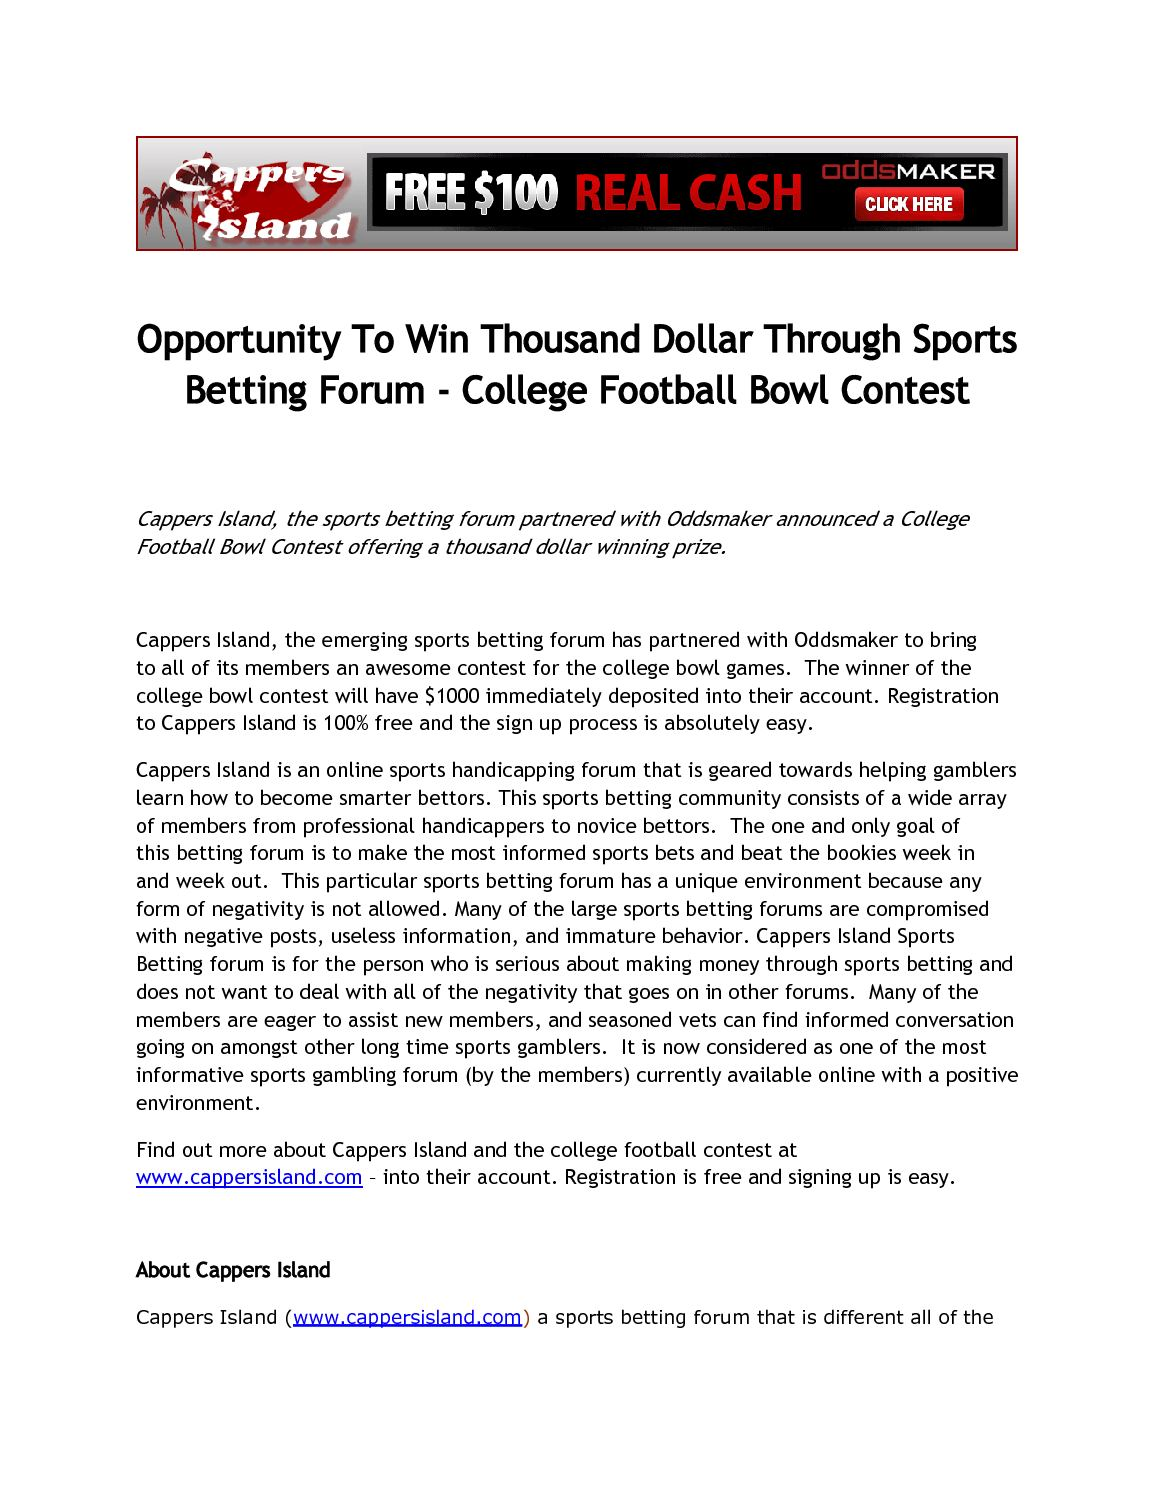 College football forums betting on sports bitcoins redit